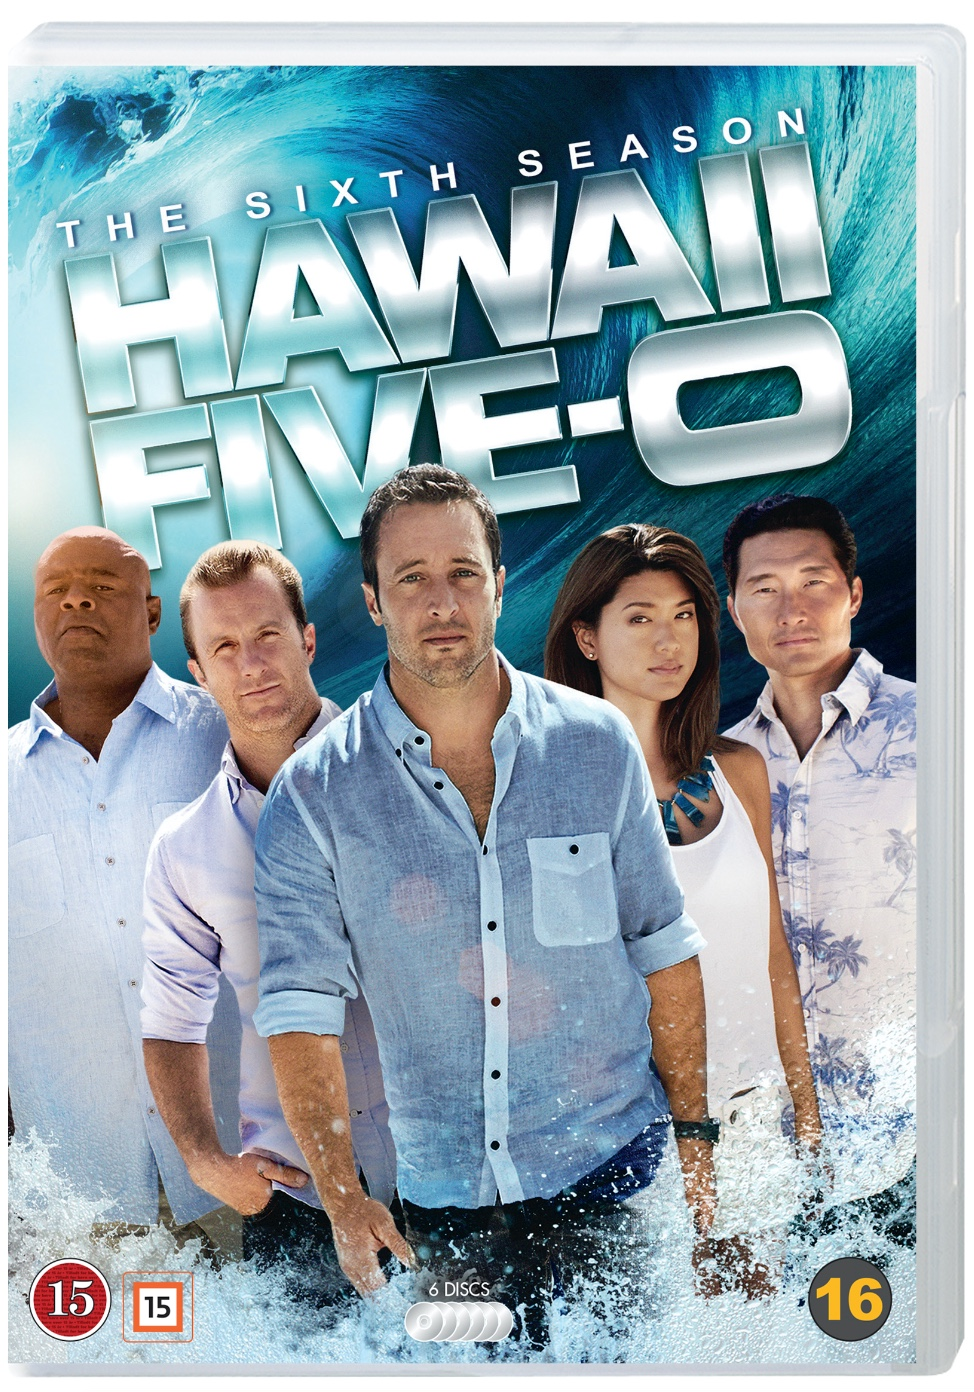 HAWAII FIVE-O season 6 cover